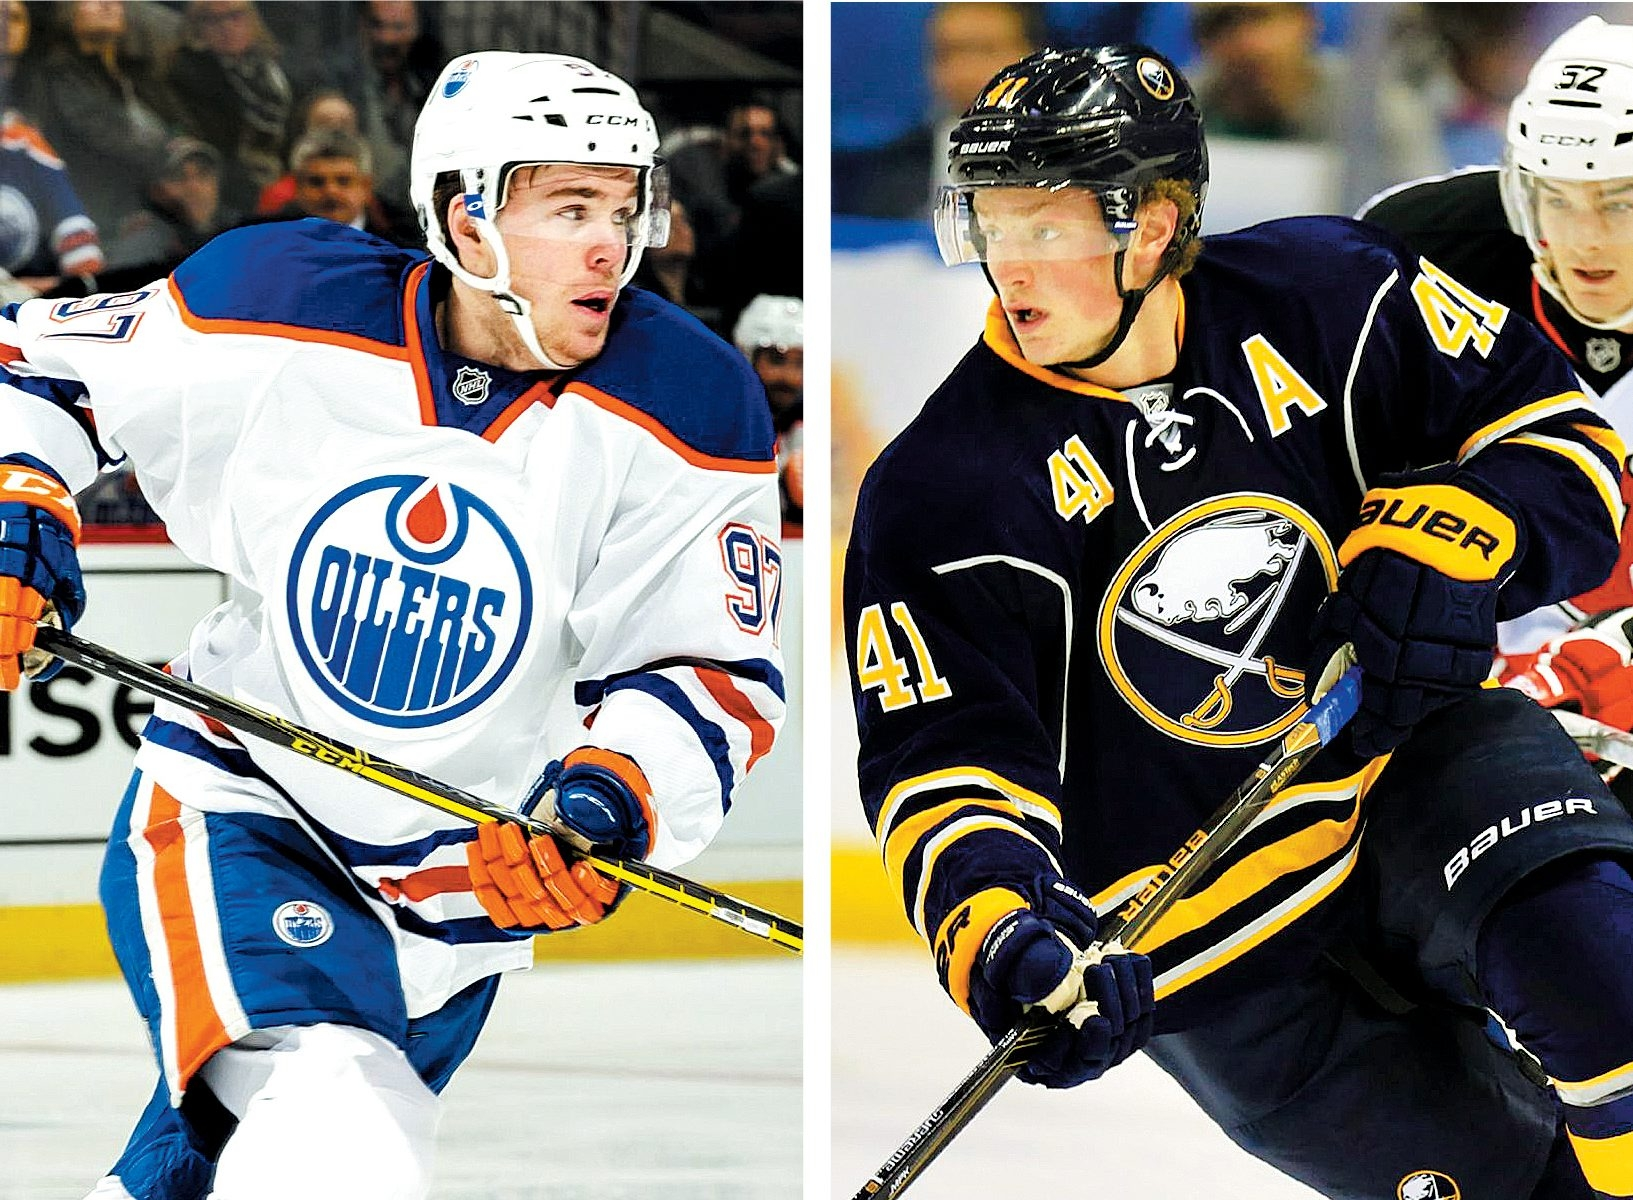 The Sabres' Jack Eichel and the Oilers' Connor McDavid are part of the U.S. team in the World Cup of Hockey.